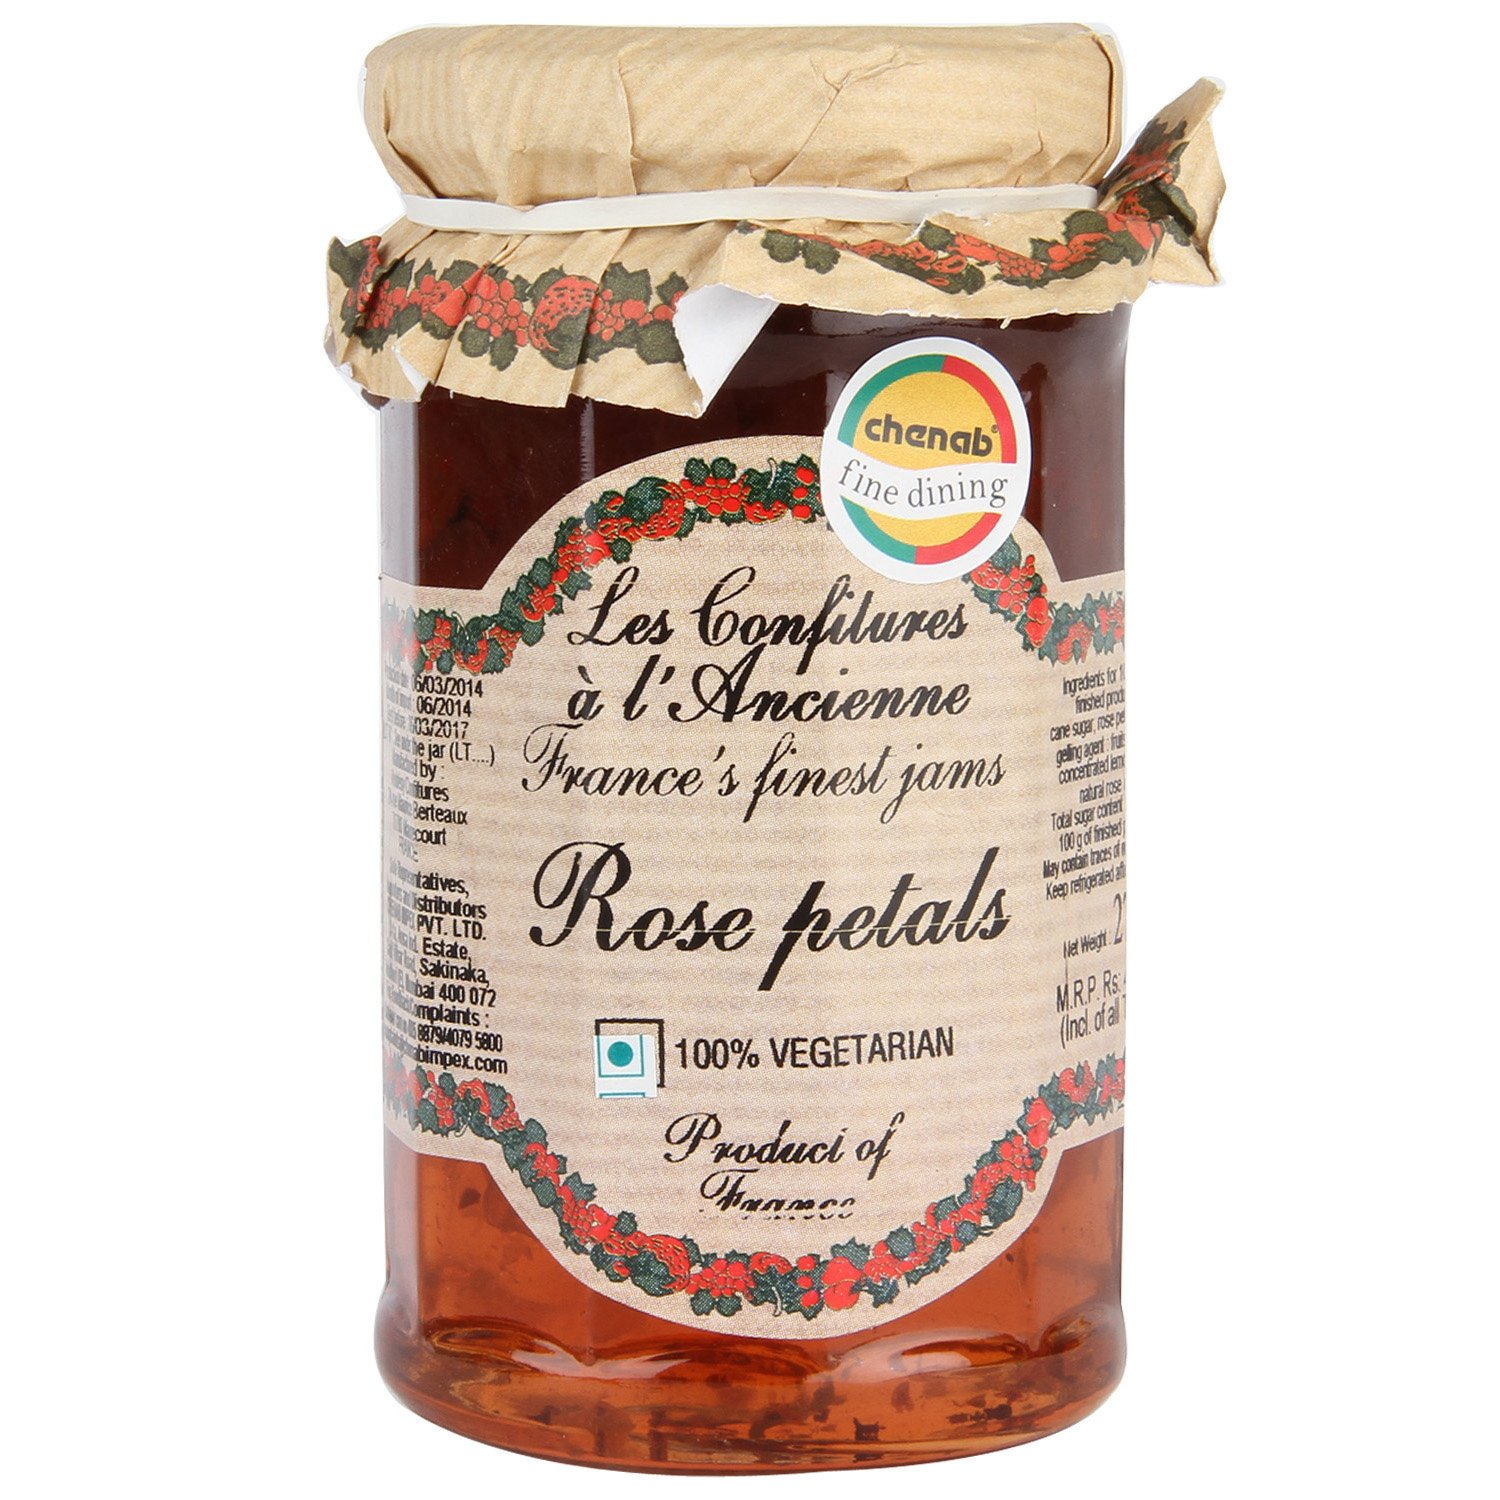 Rose Petal Max 75% OFF Jam Andresy All natural jam SEAL limited product sugar 9. cane pure French